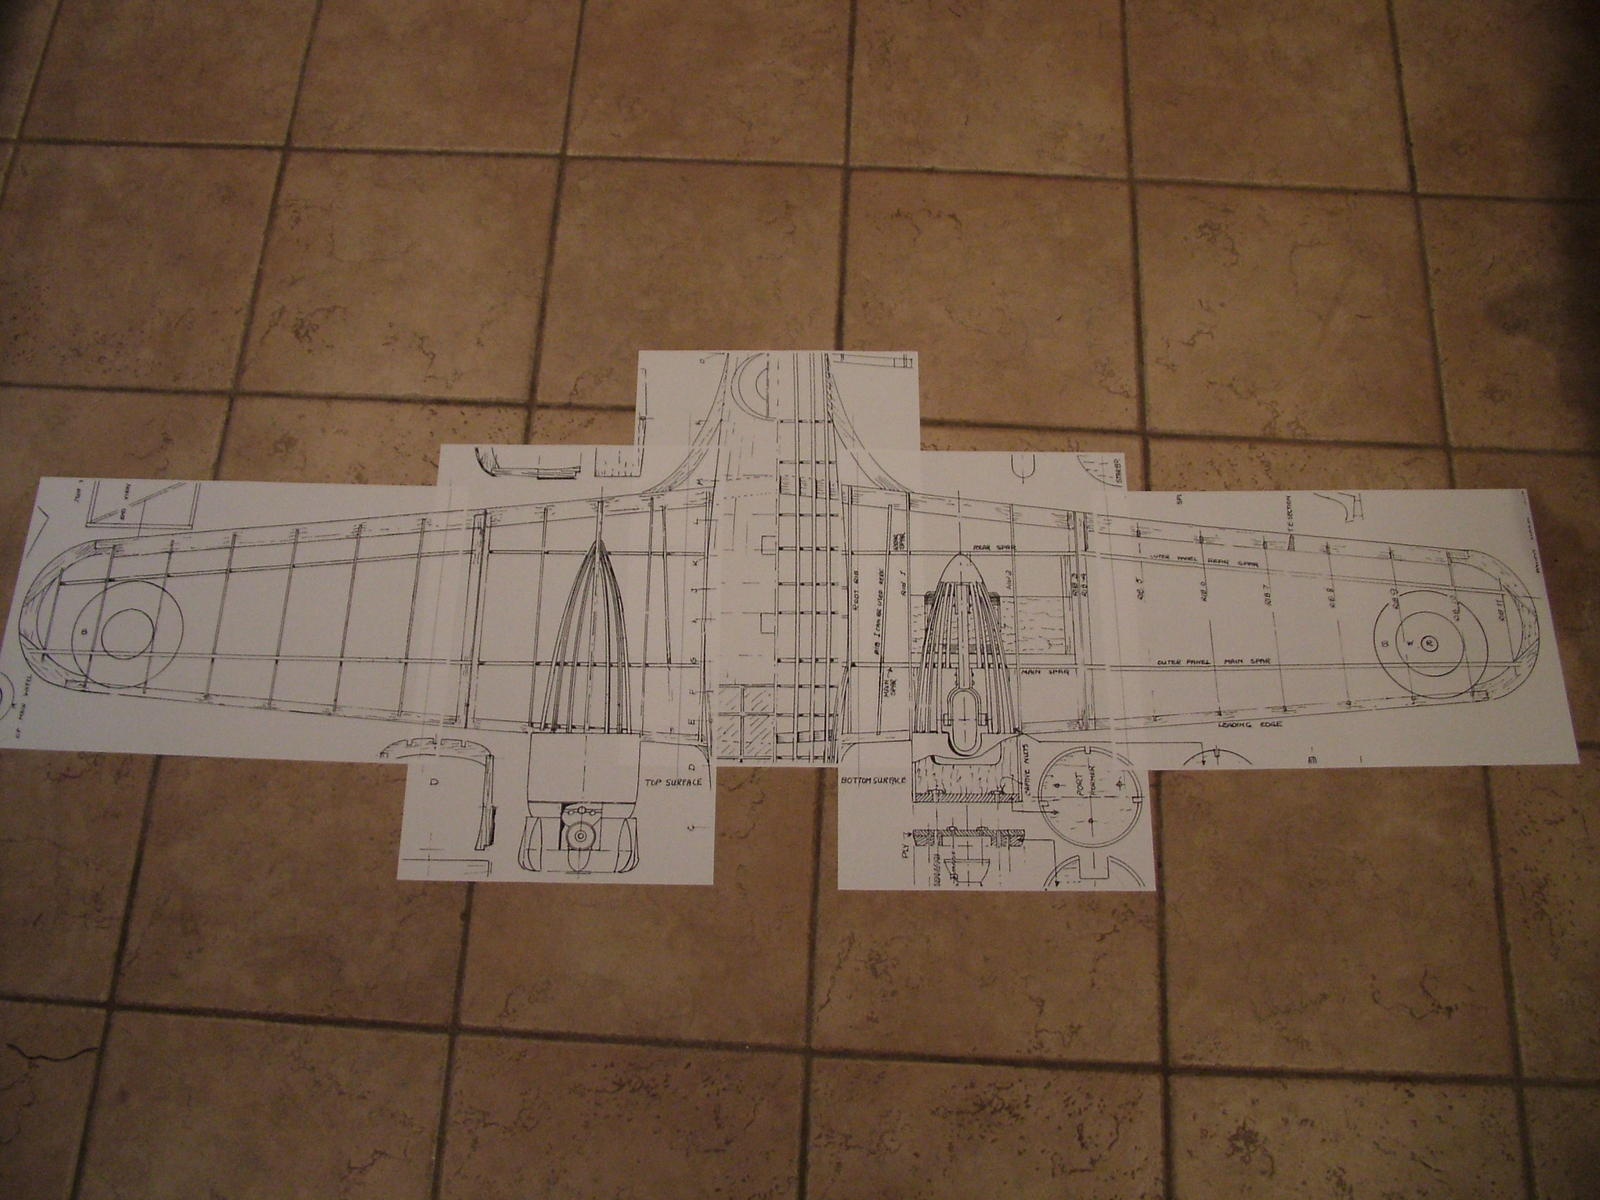 11x17 sheets roughly layed out on floor.  12x12 tiles for reference